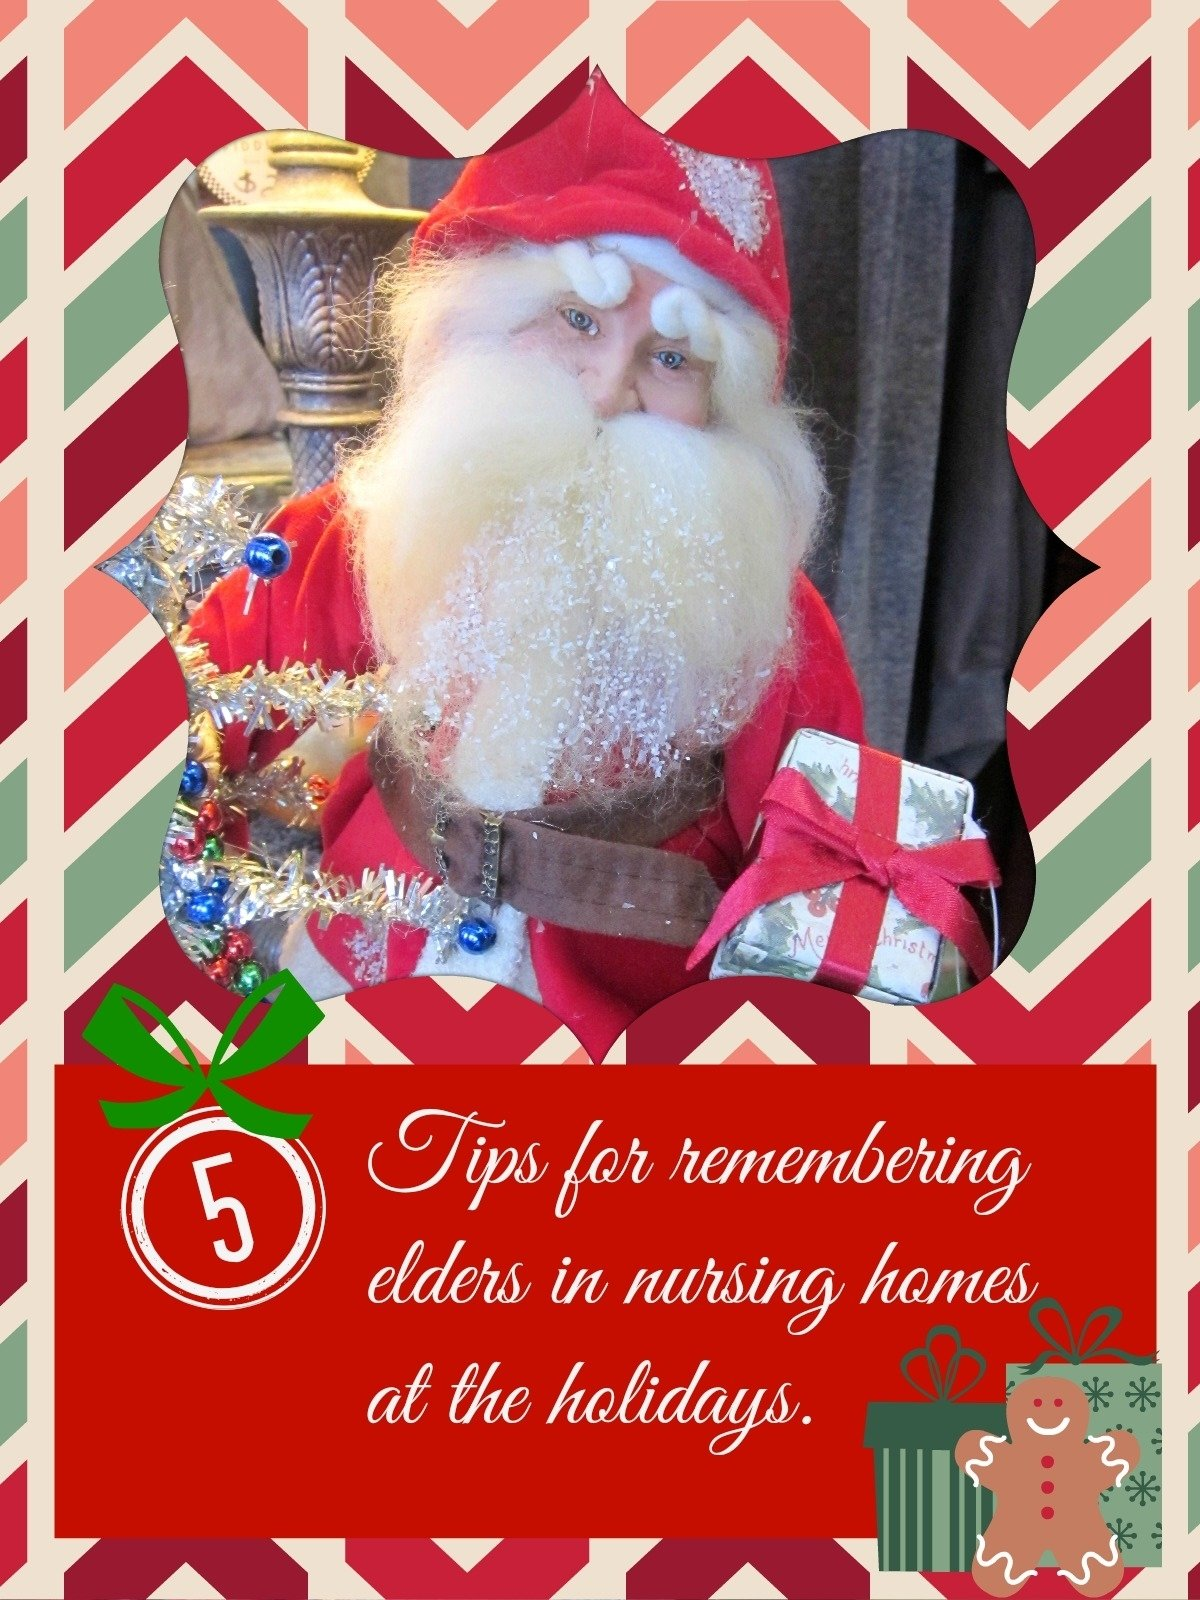 10 Nice Gift Ideas For Nursing Home Residents 5 tips for spreading joy to nursing home residents at the holidays 2020